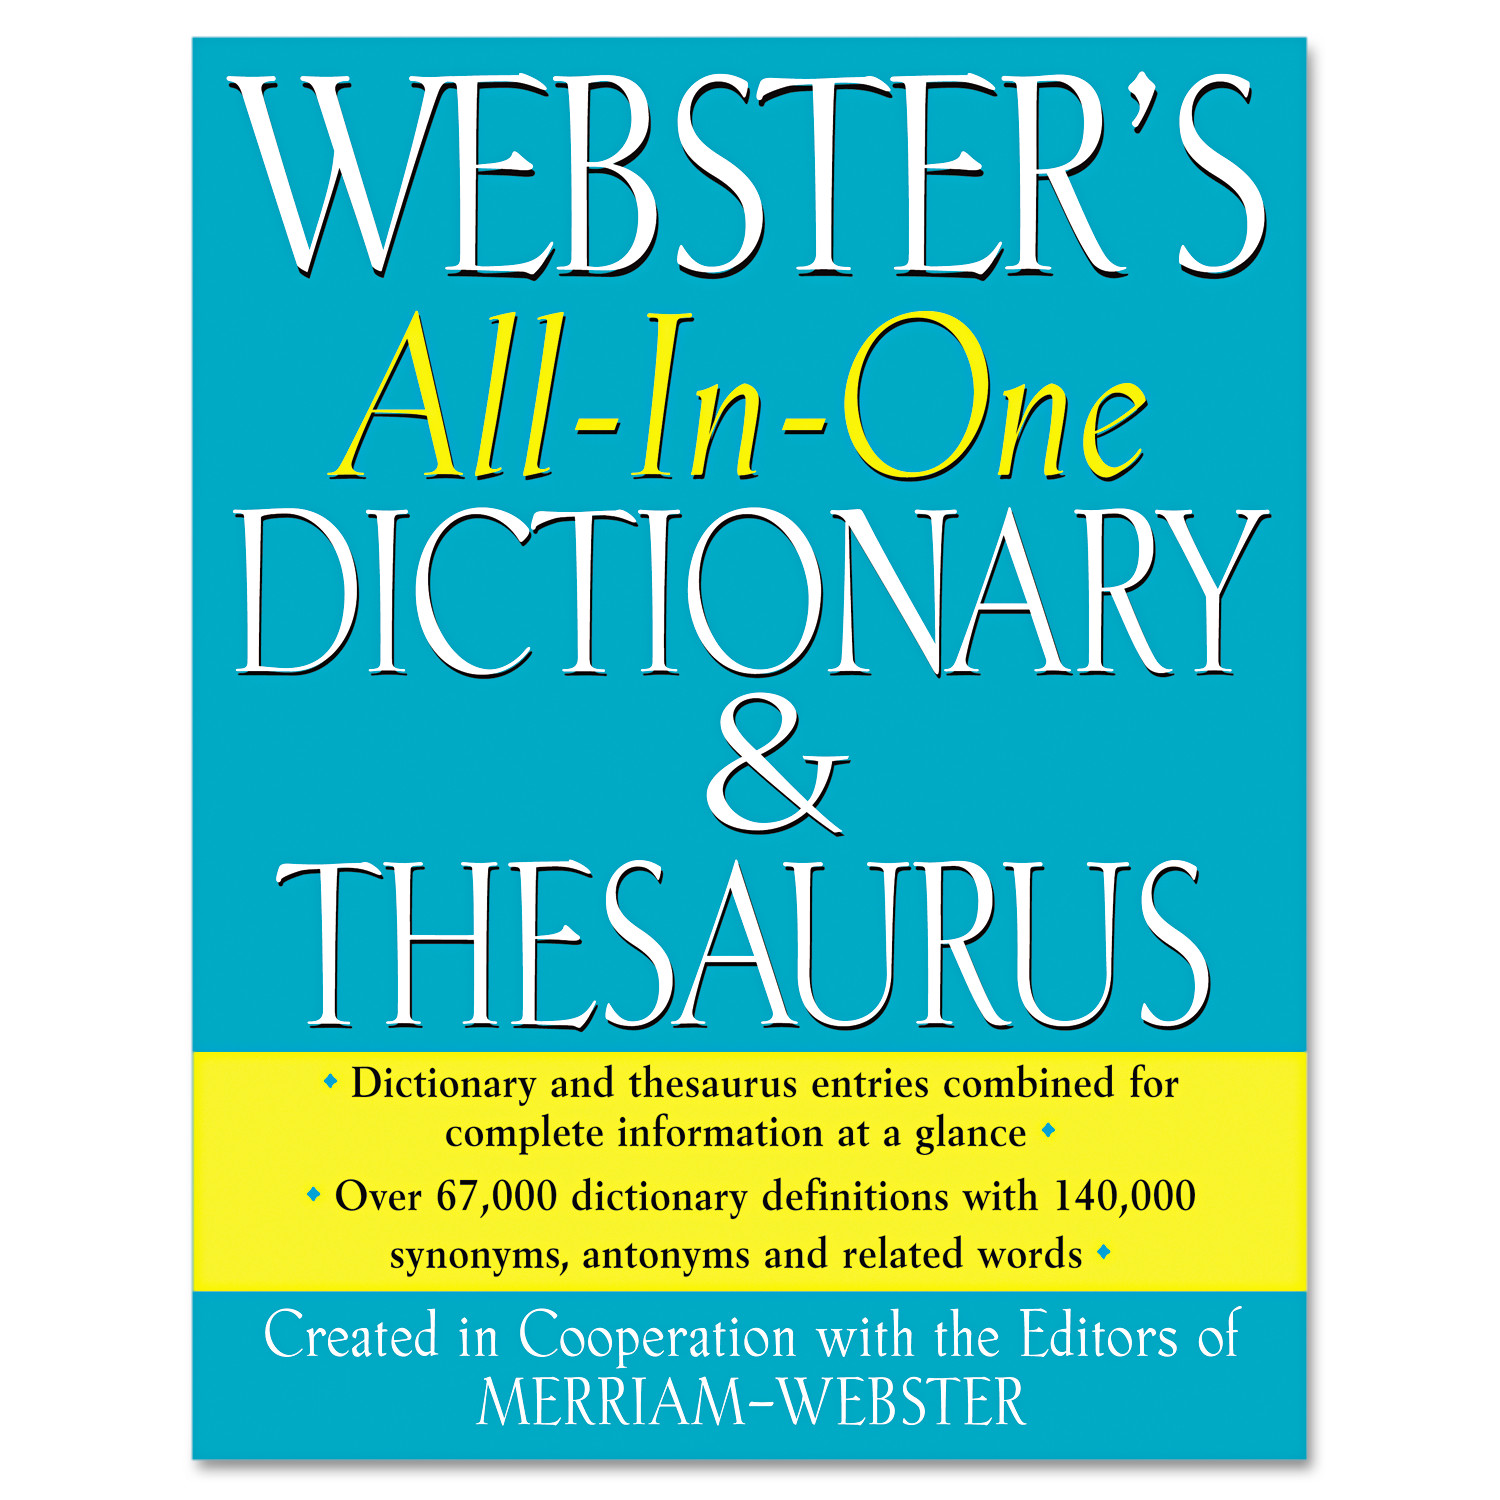 Merriam Webster All-In-One Dictionary/Thesaurus, Hardcover, 768 Pages